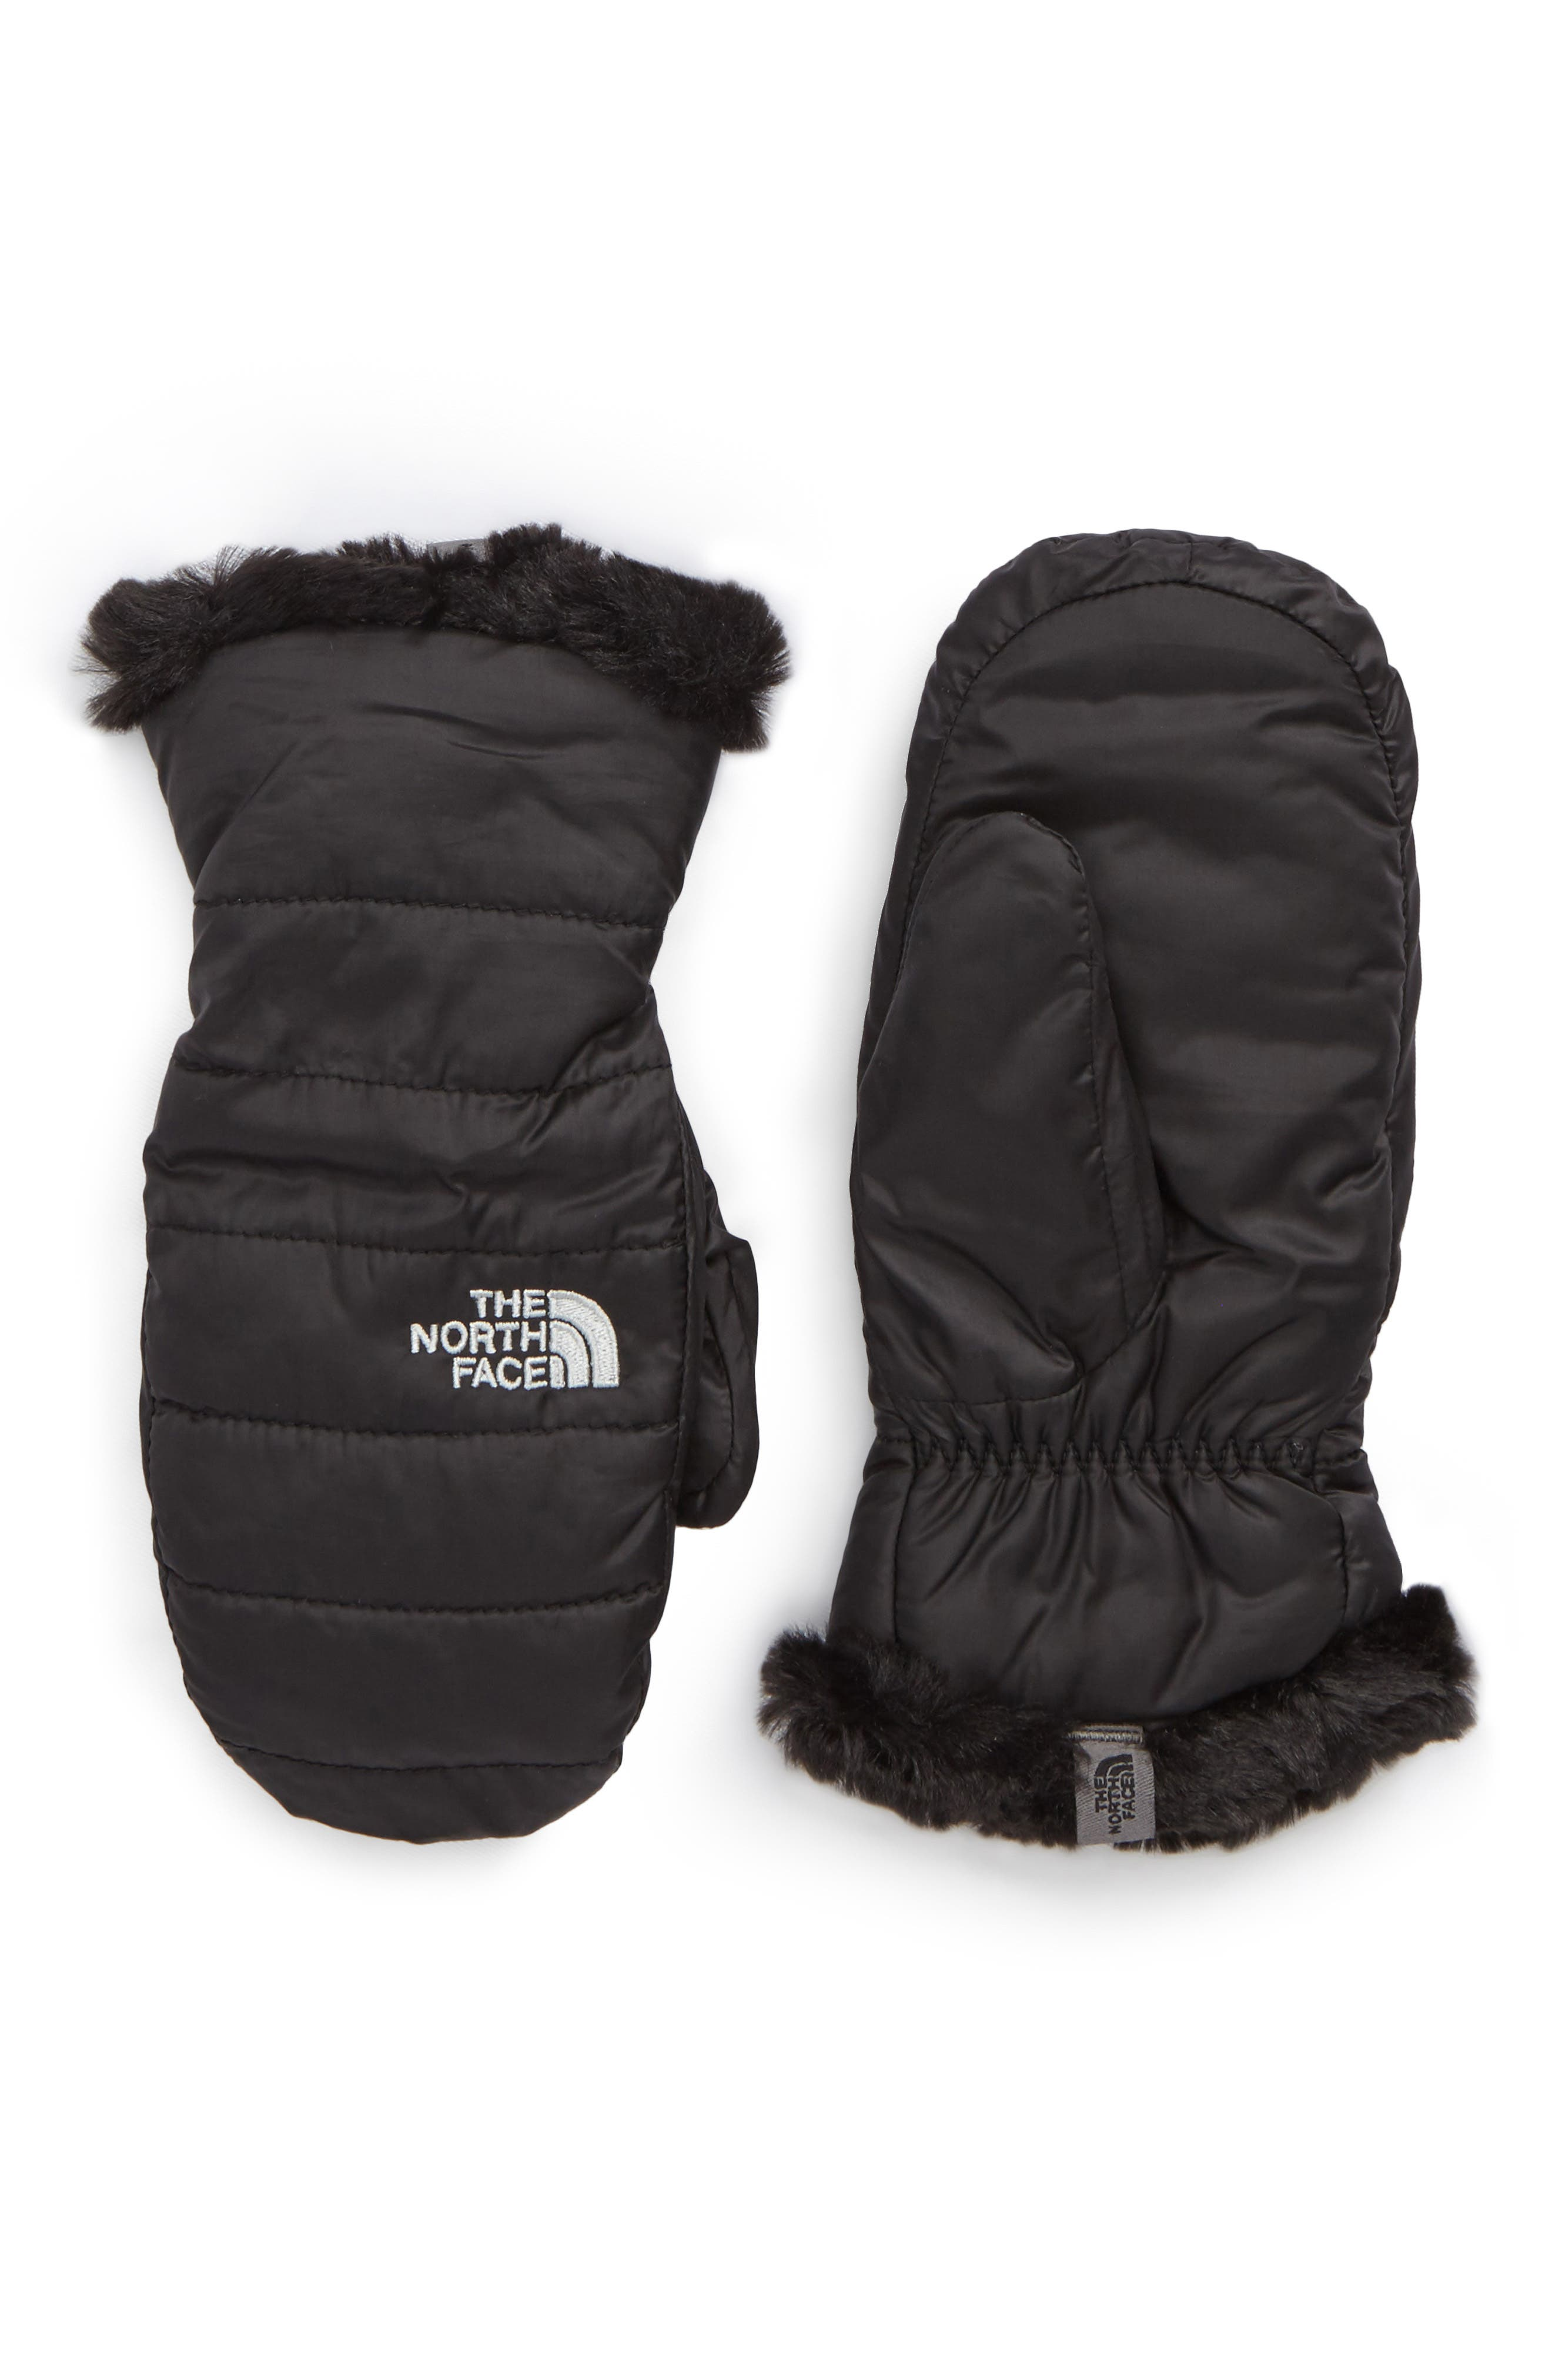 Mossbud Swirl Reversible Water Resistant Mittens,                         Main,                         color, Tnf Black